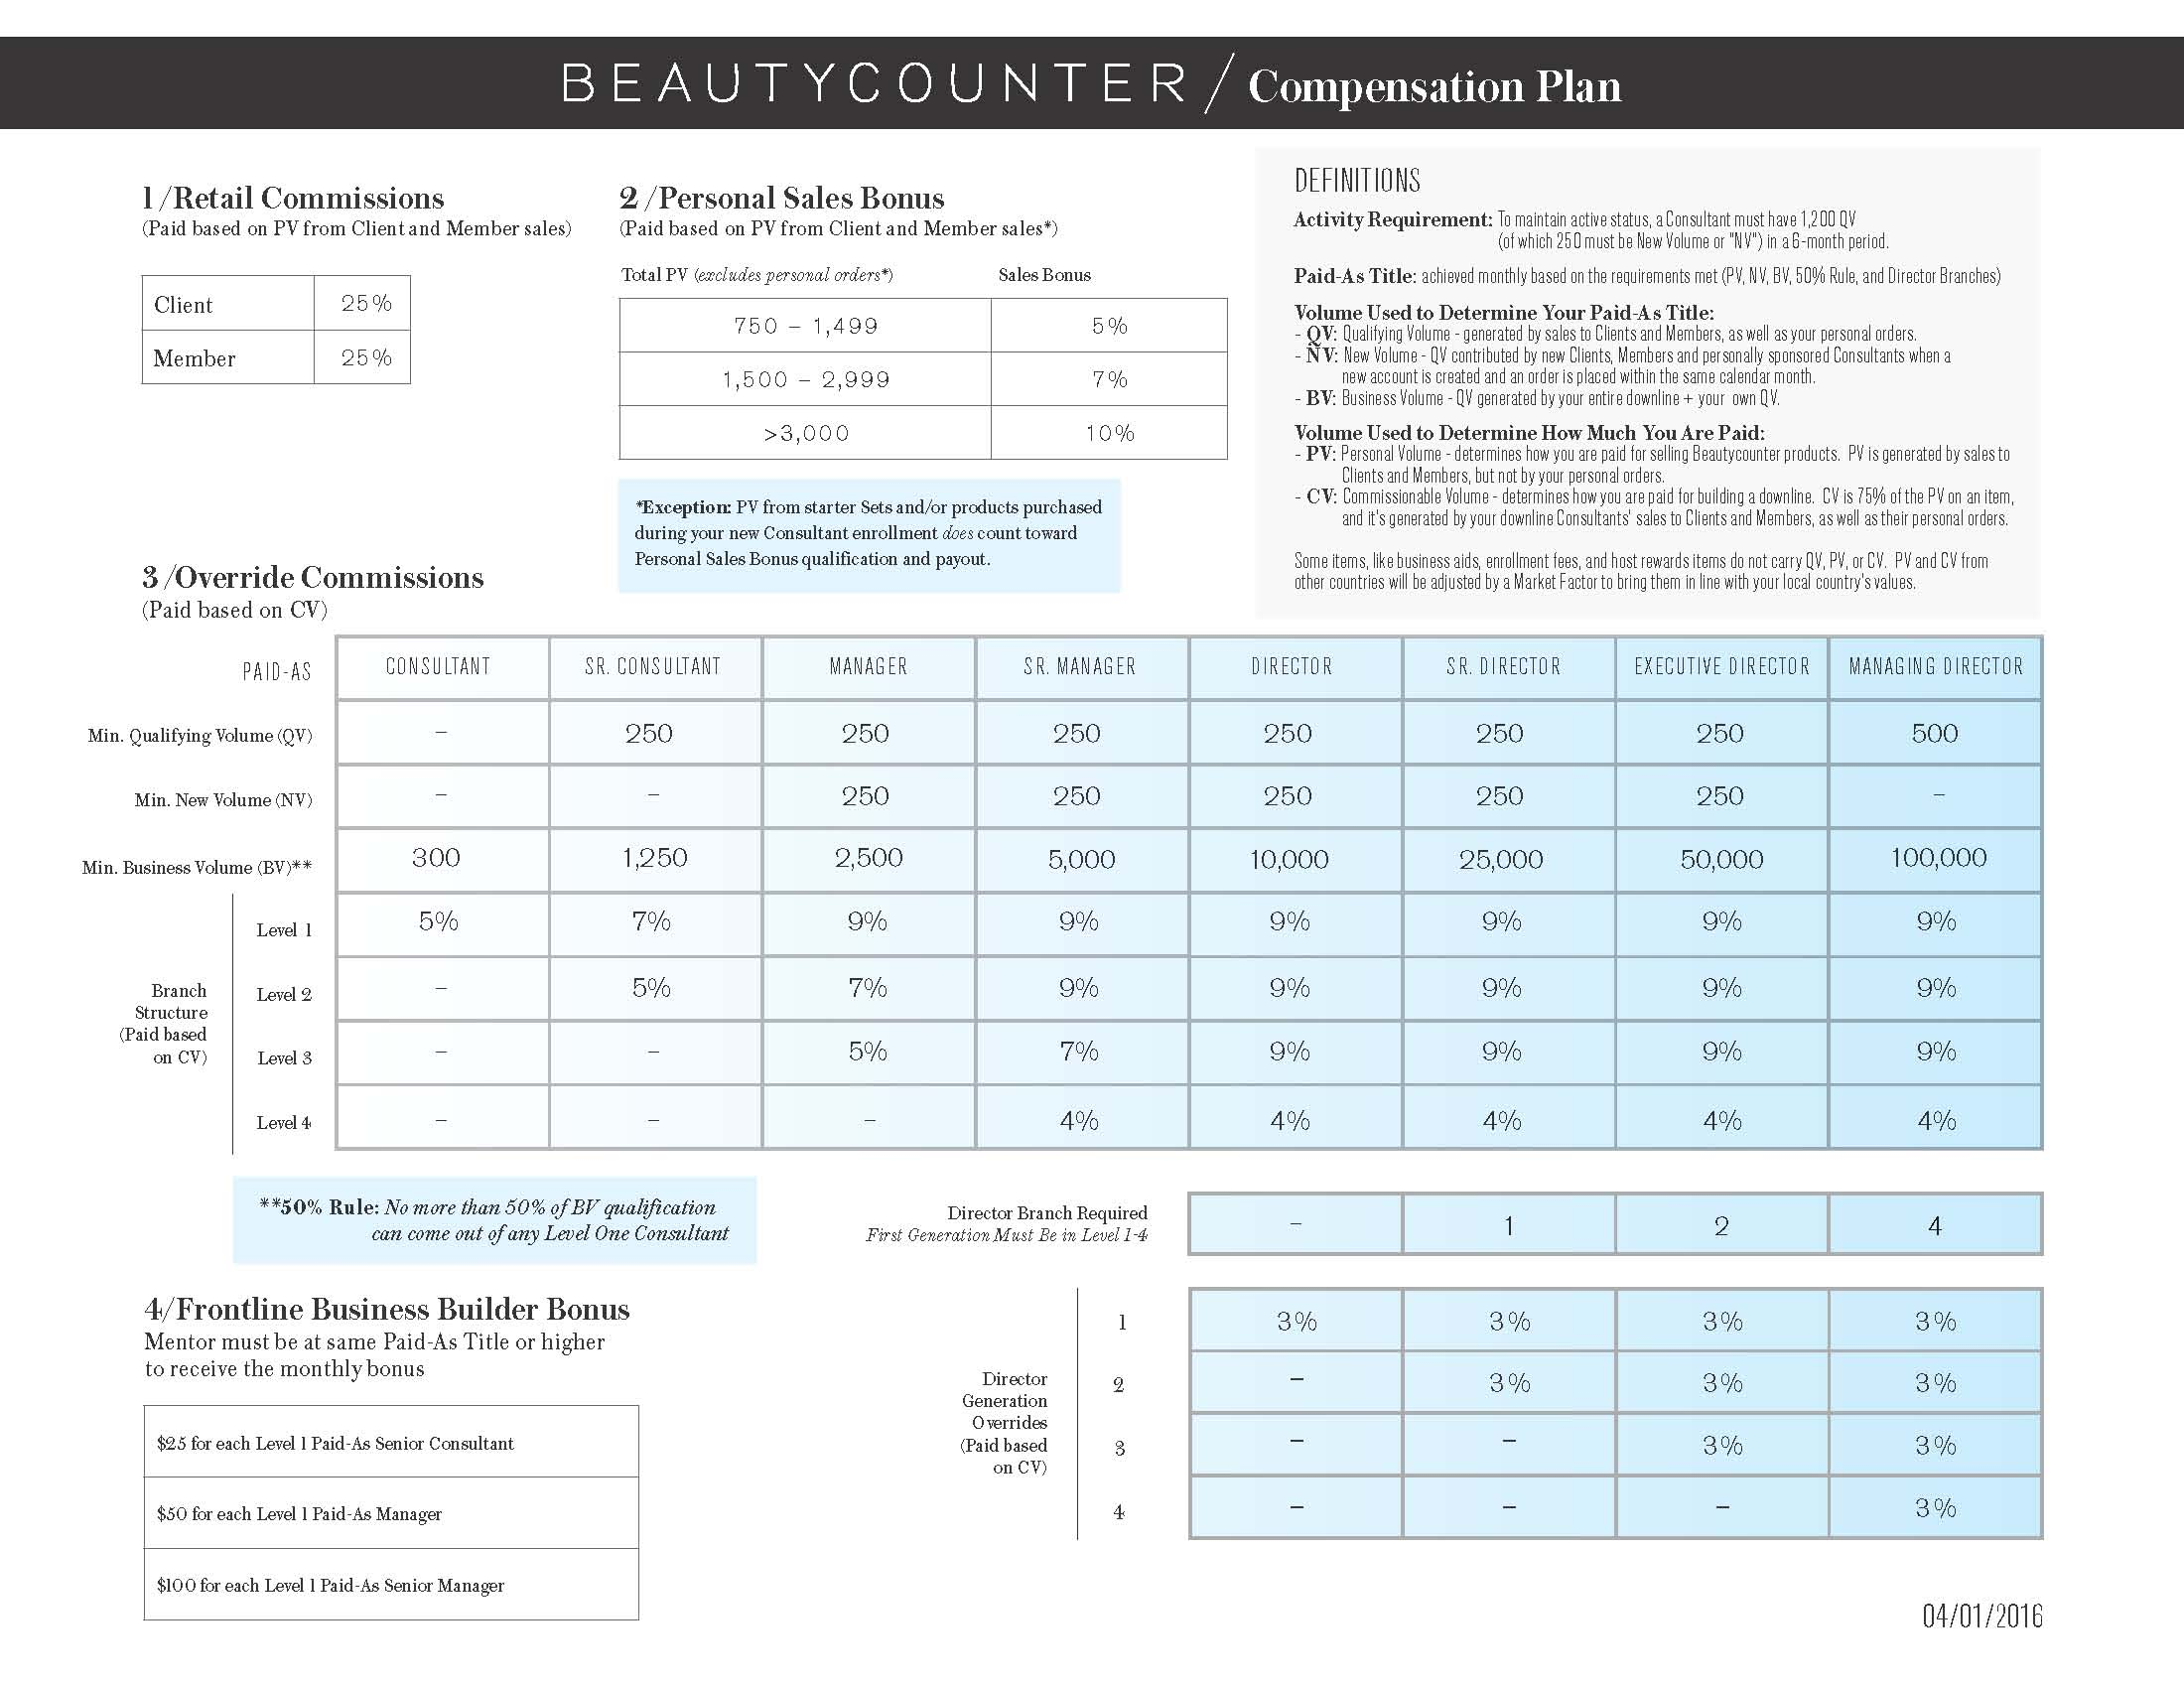 Beauty Counter Reviews-Compensation